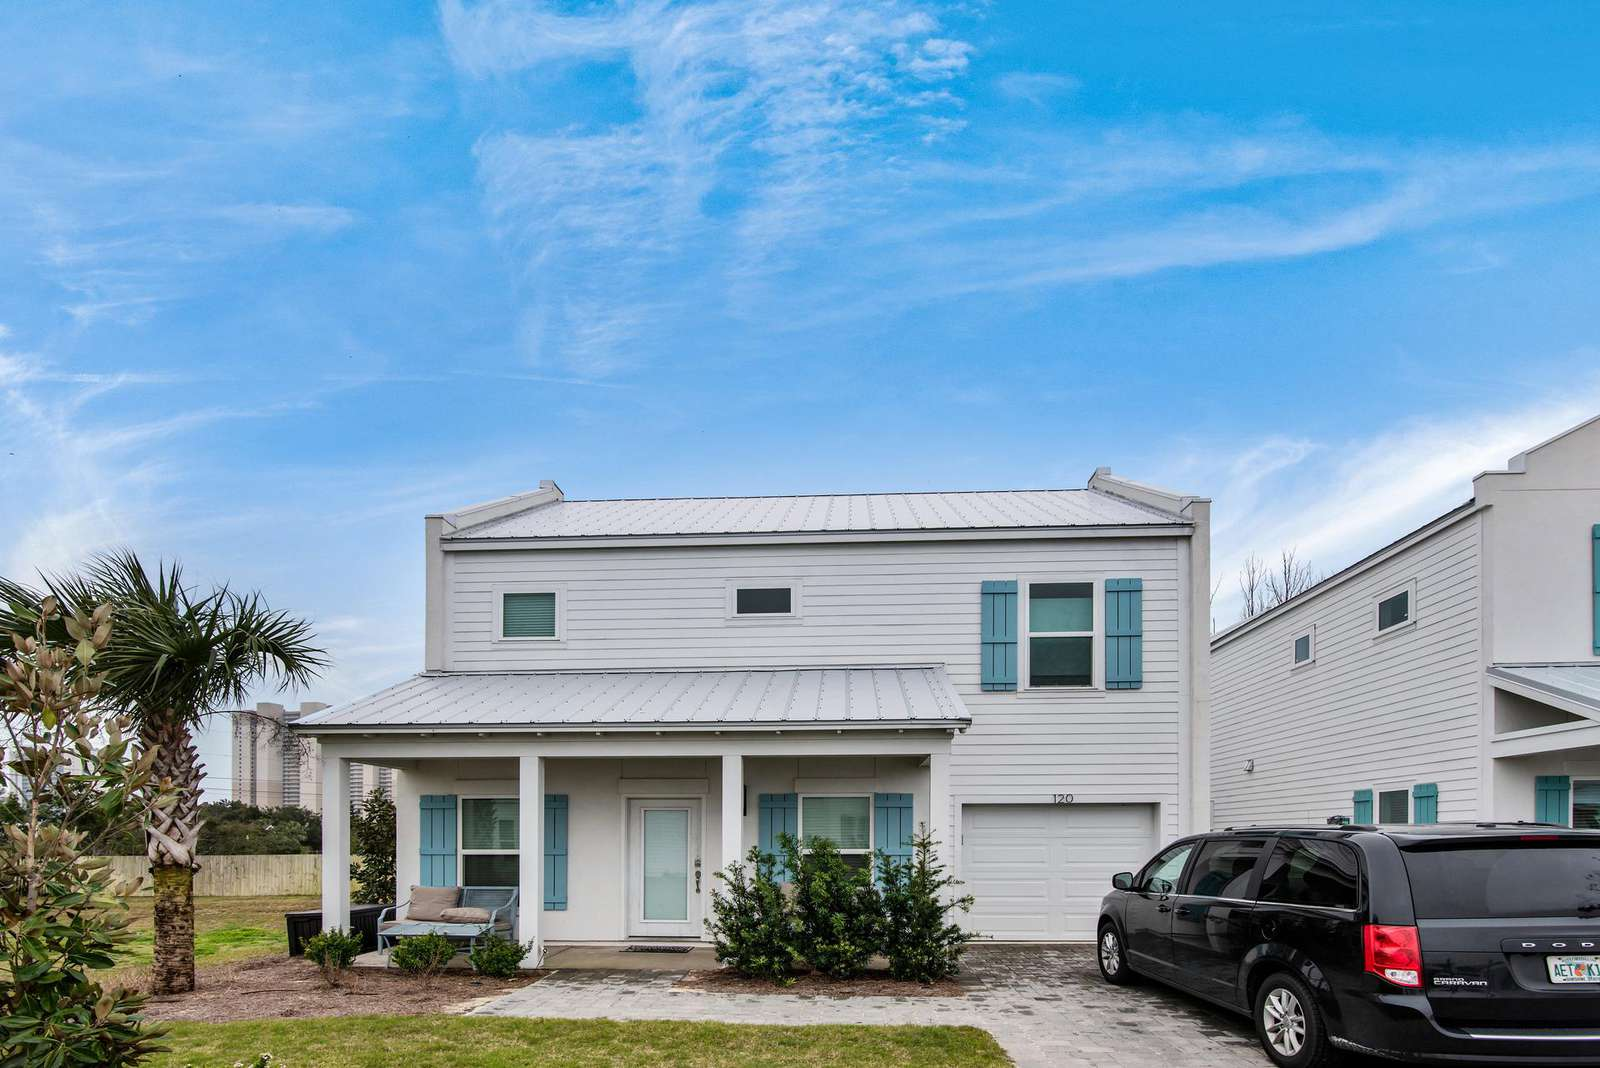 Seabreeze - New Construction - Short Walk to the Beach!  Beachy Beautiful!